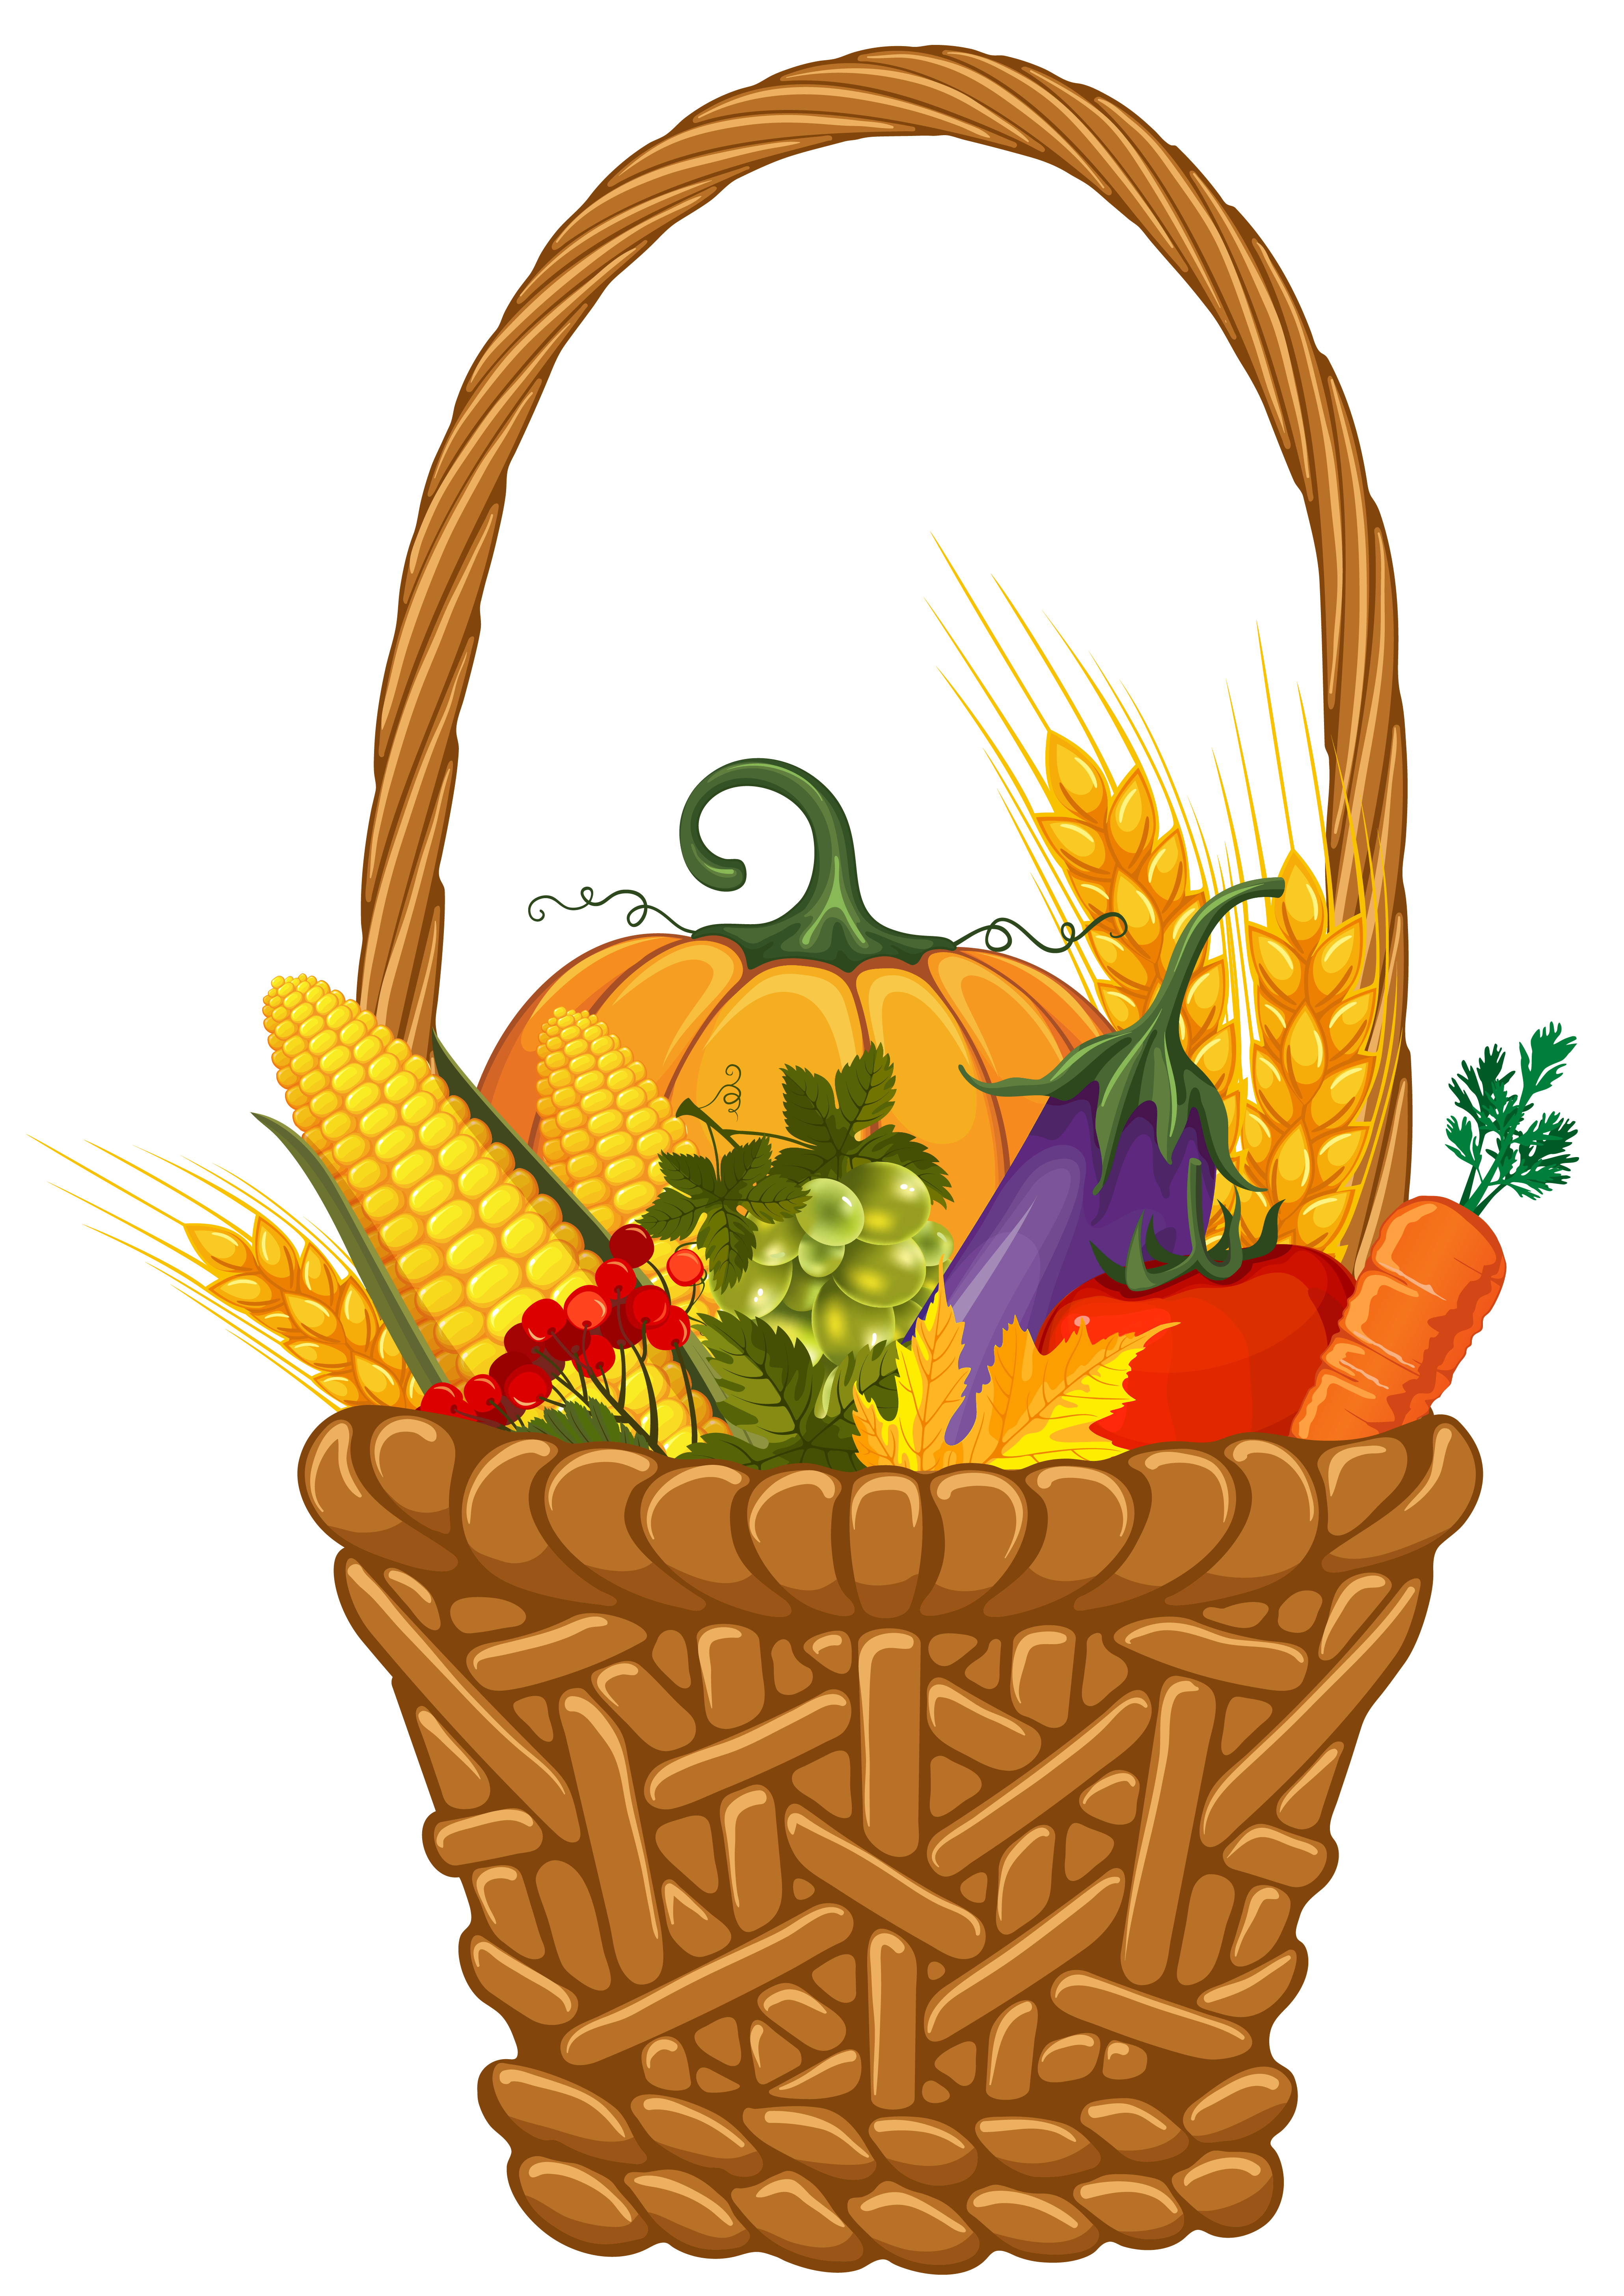 4120x5826 Basket Clipart Harvest Basket